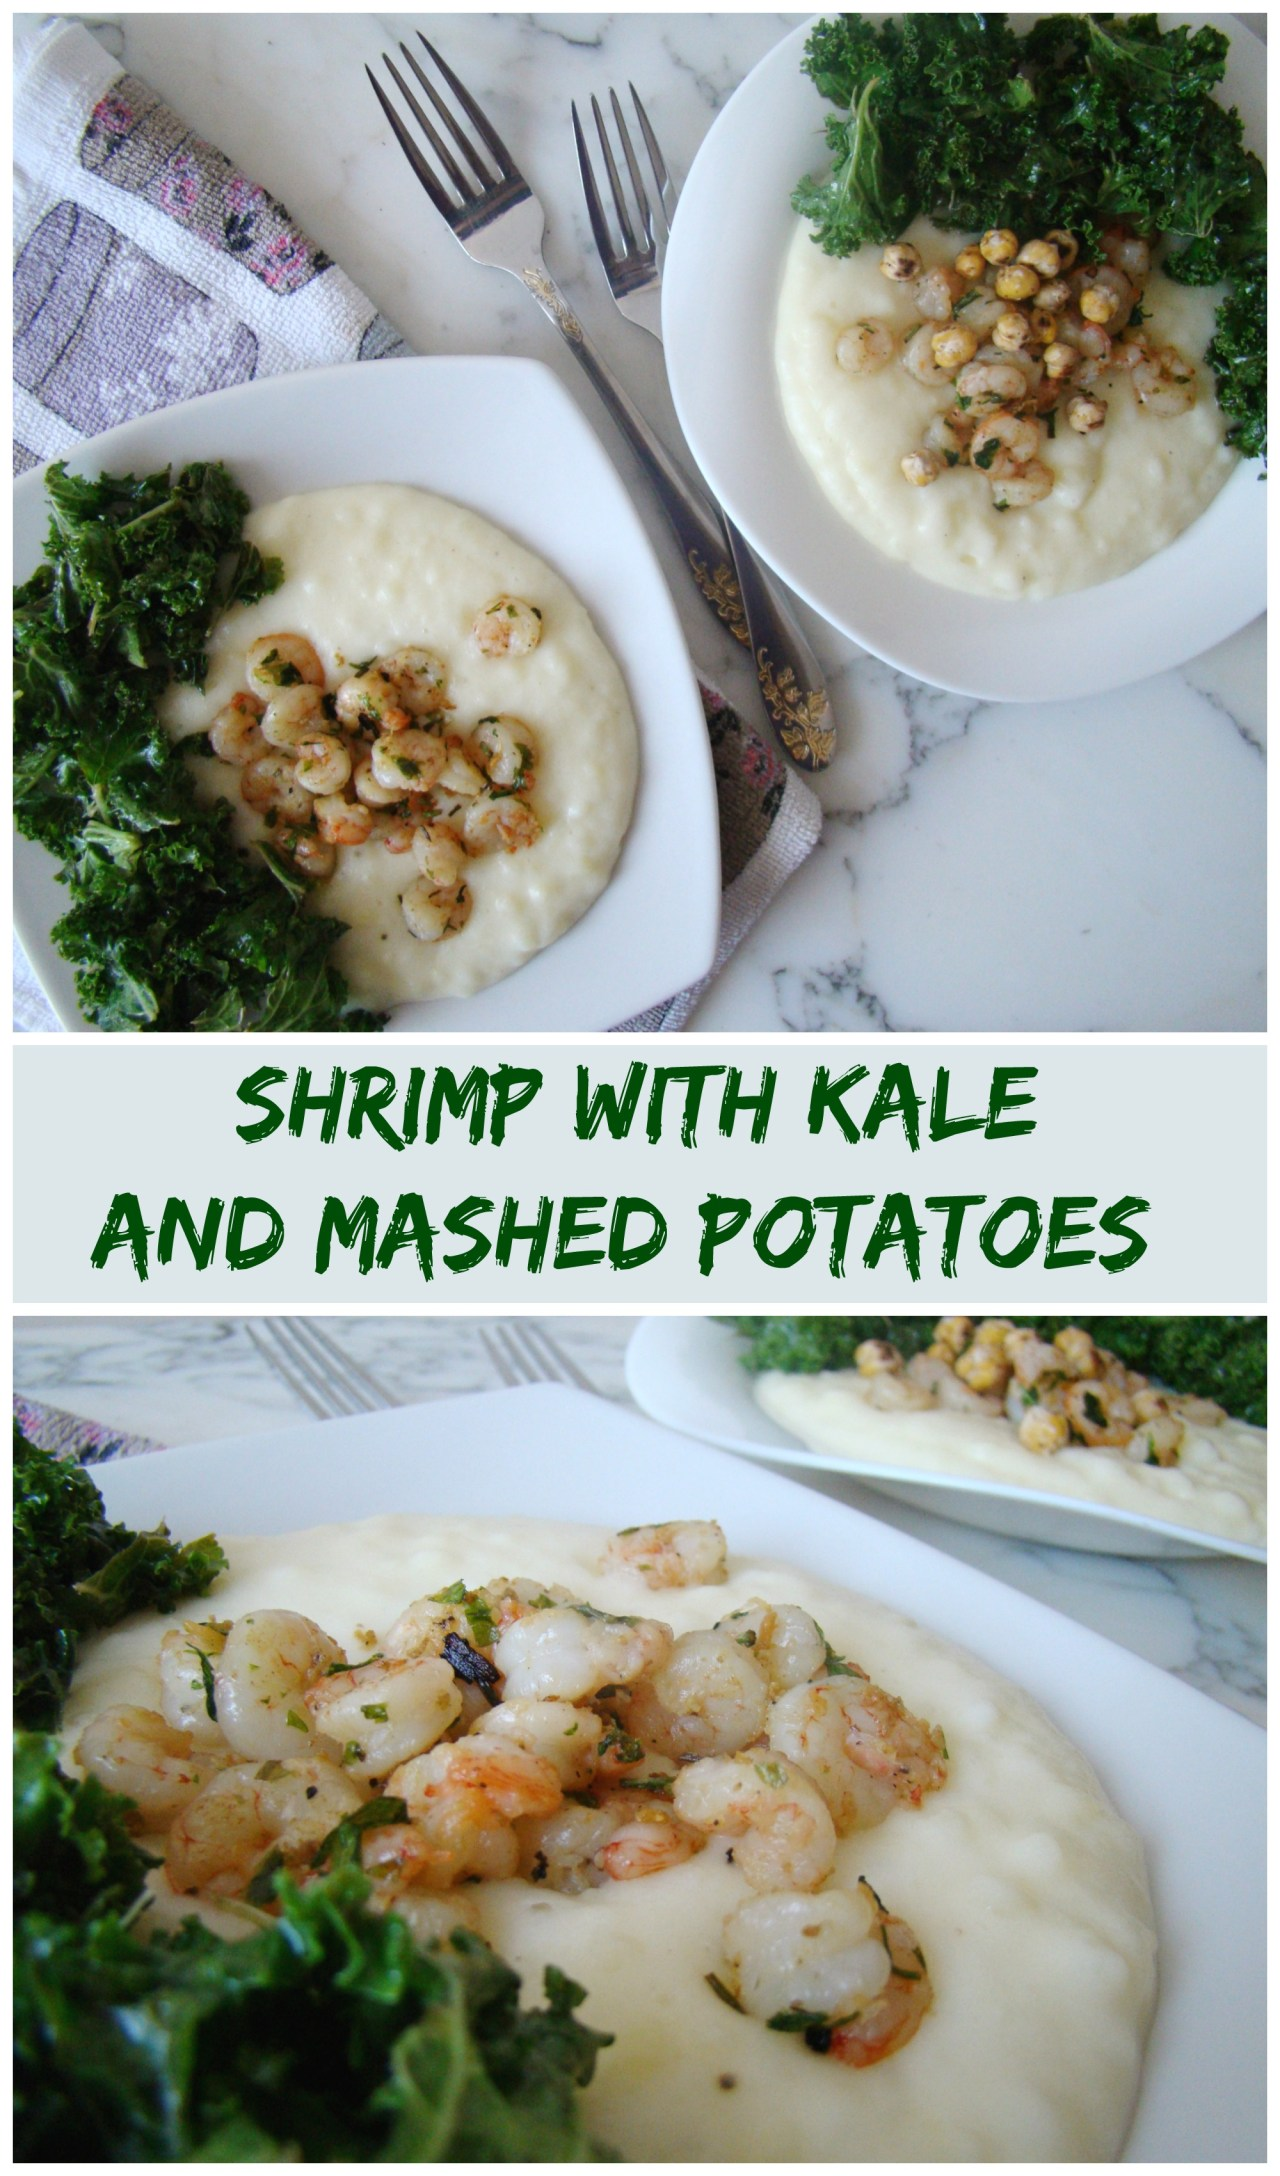 Shrimp with Kale and Mashed Potatoes